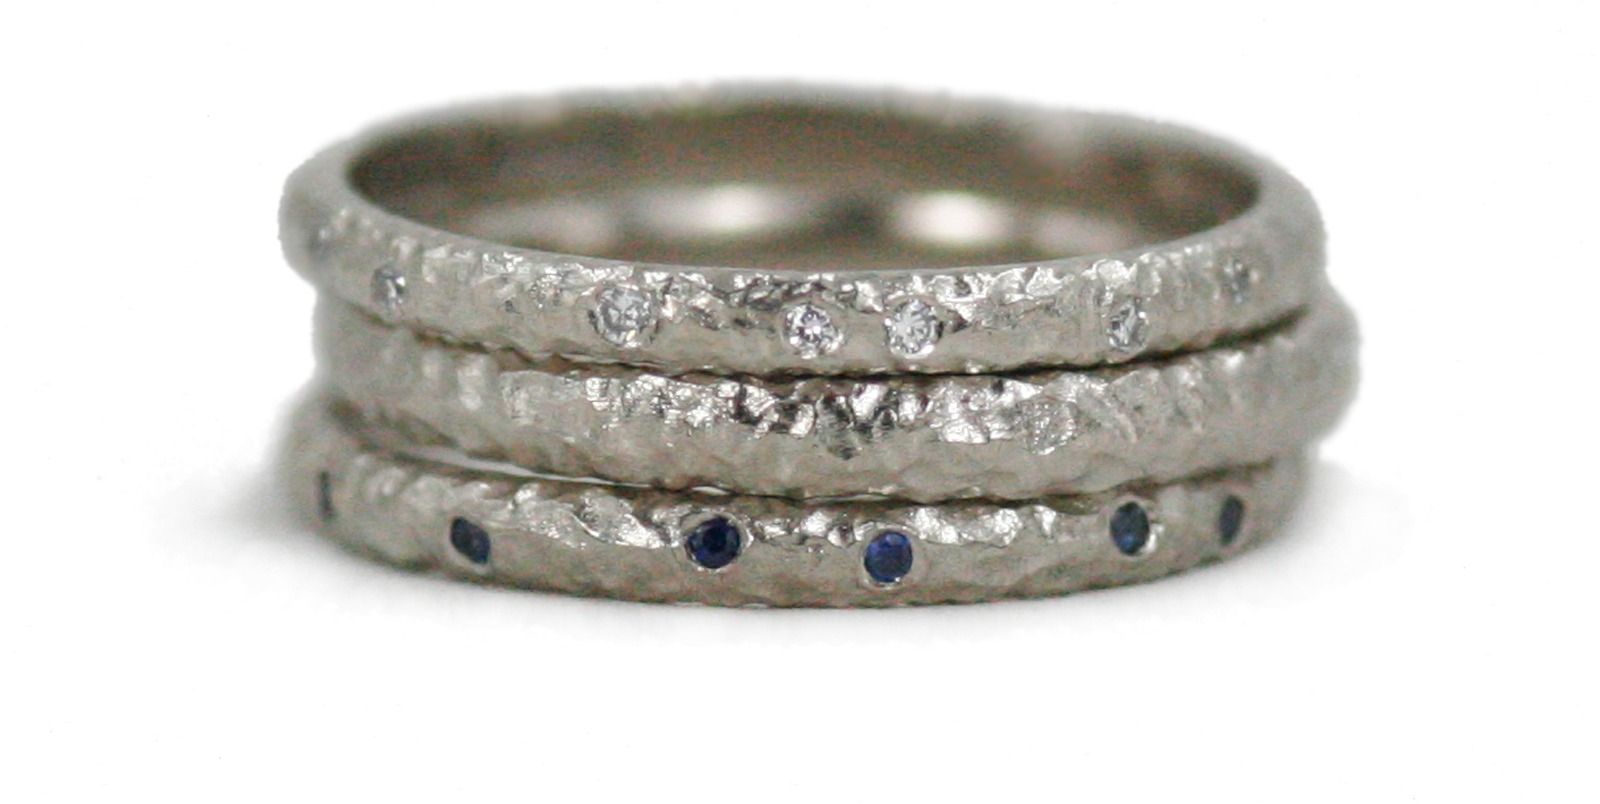 Rose's Ring Stack